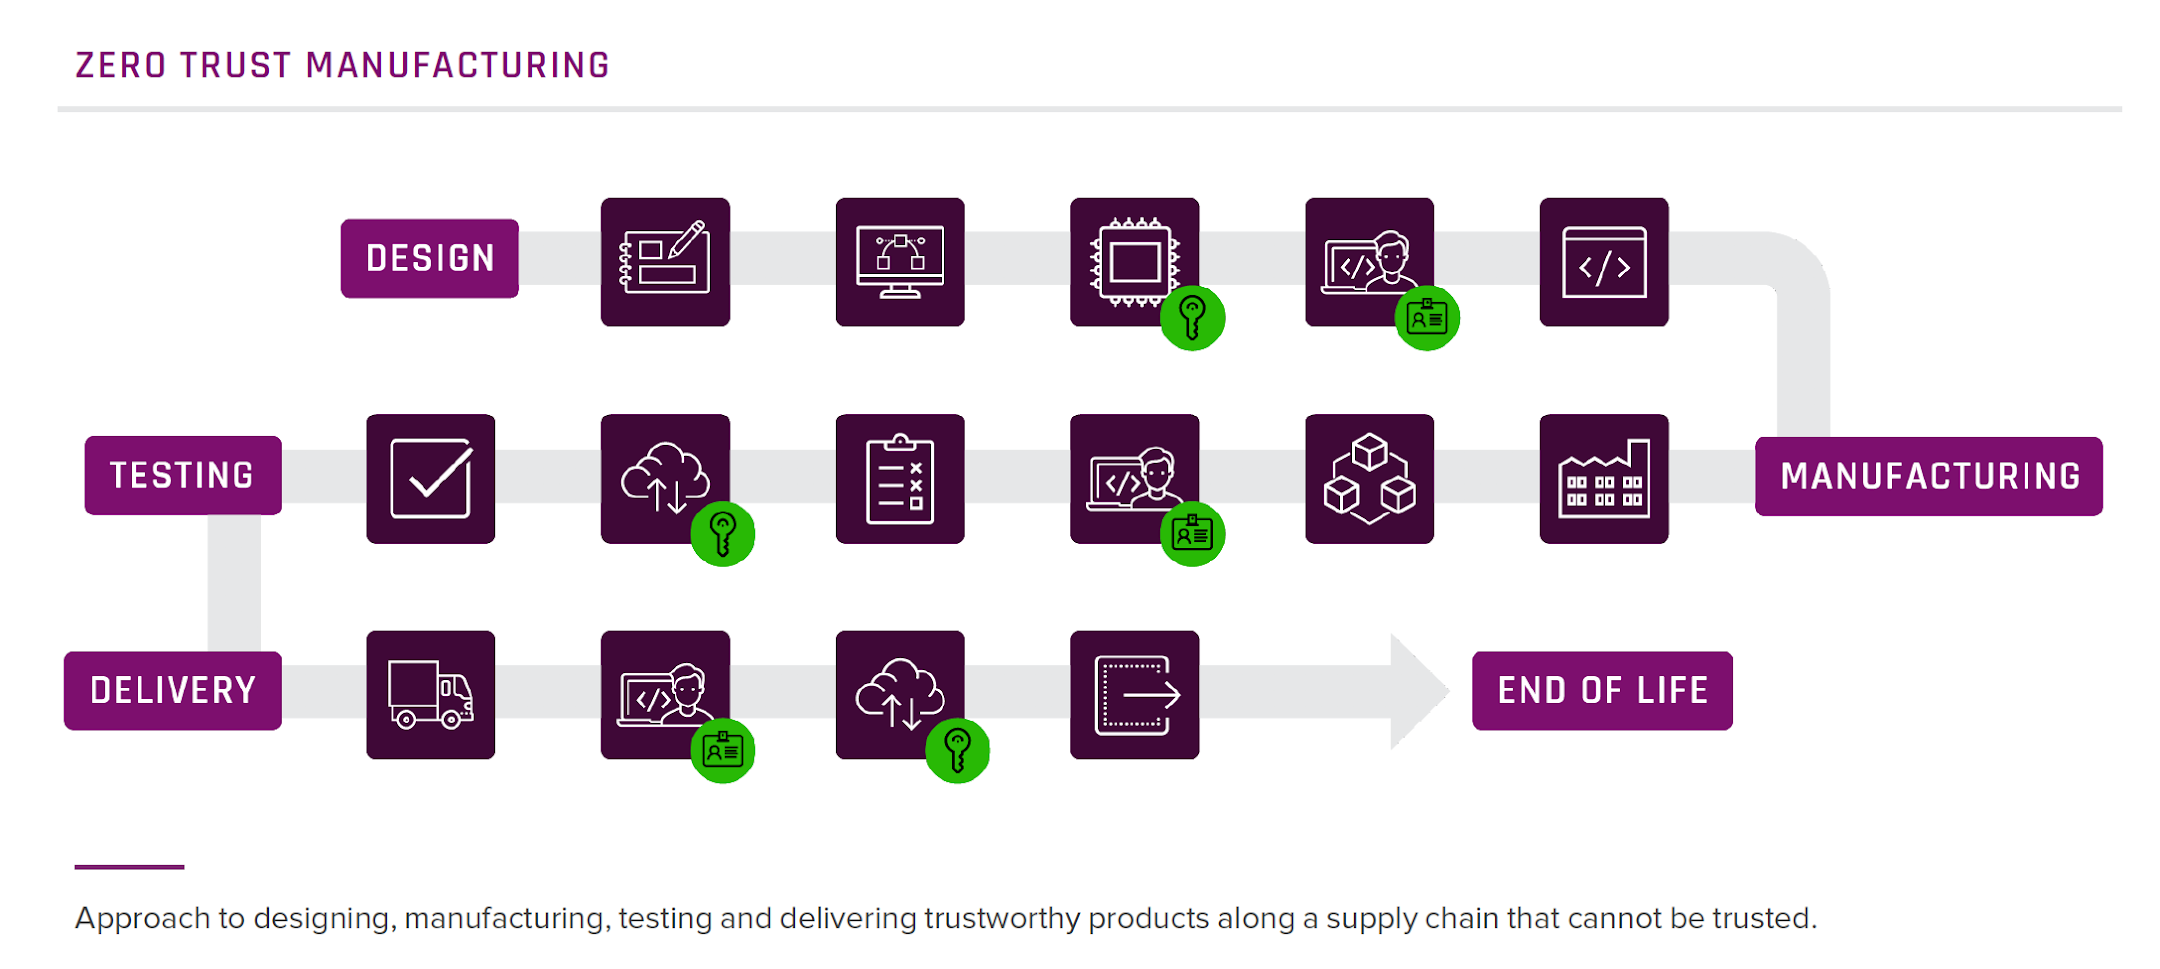 Approach to designing, manufacturing, testing and delivering trustworthy products along a supply chain that cannot be trusted.